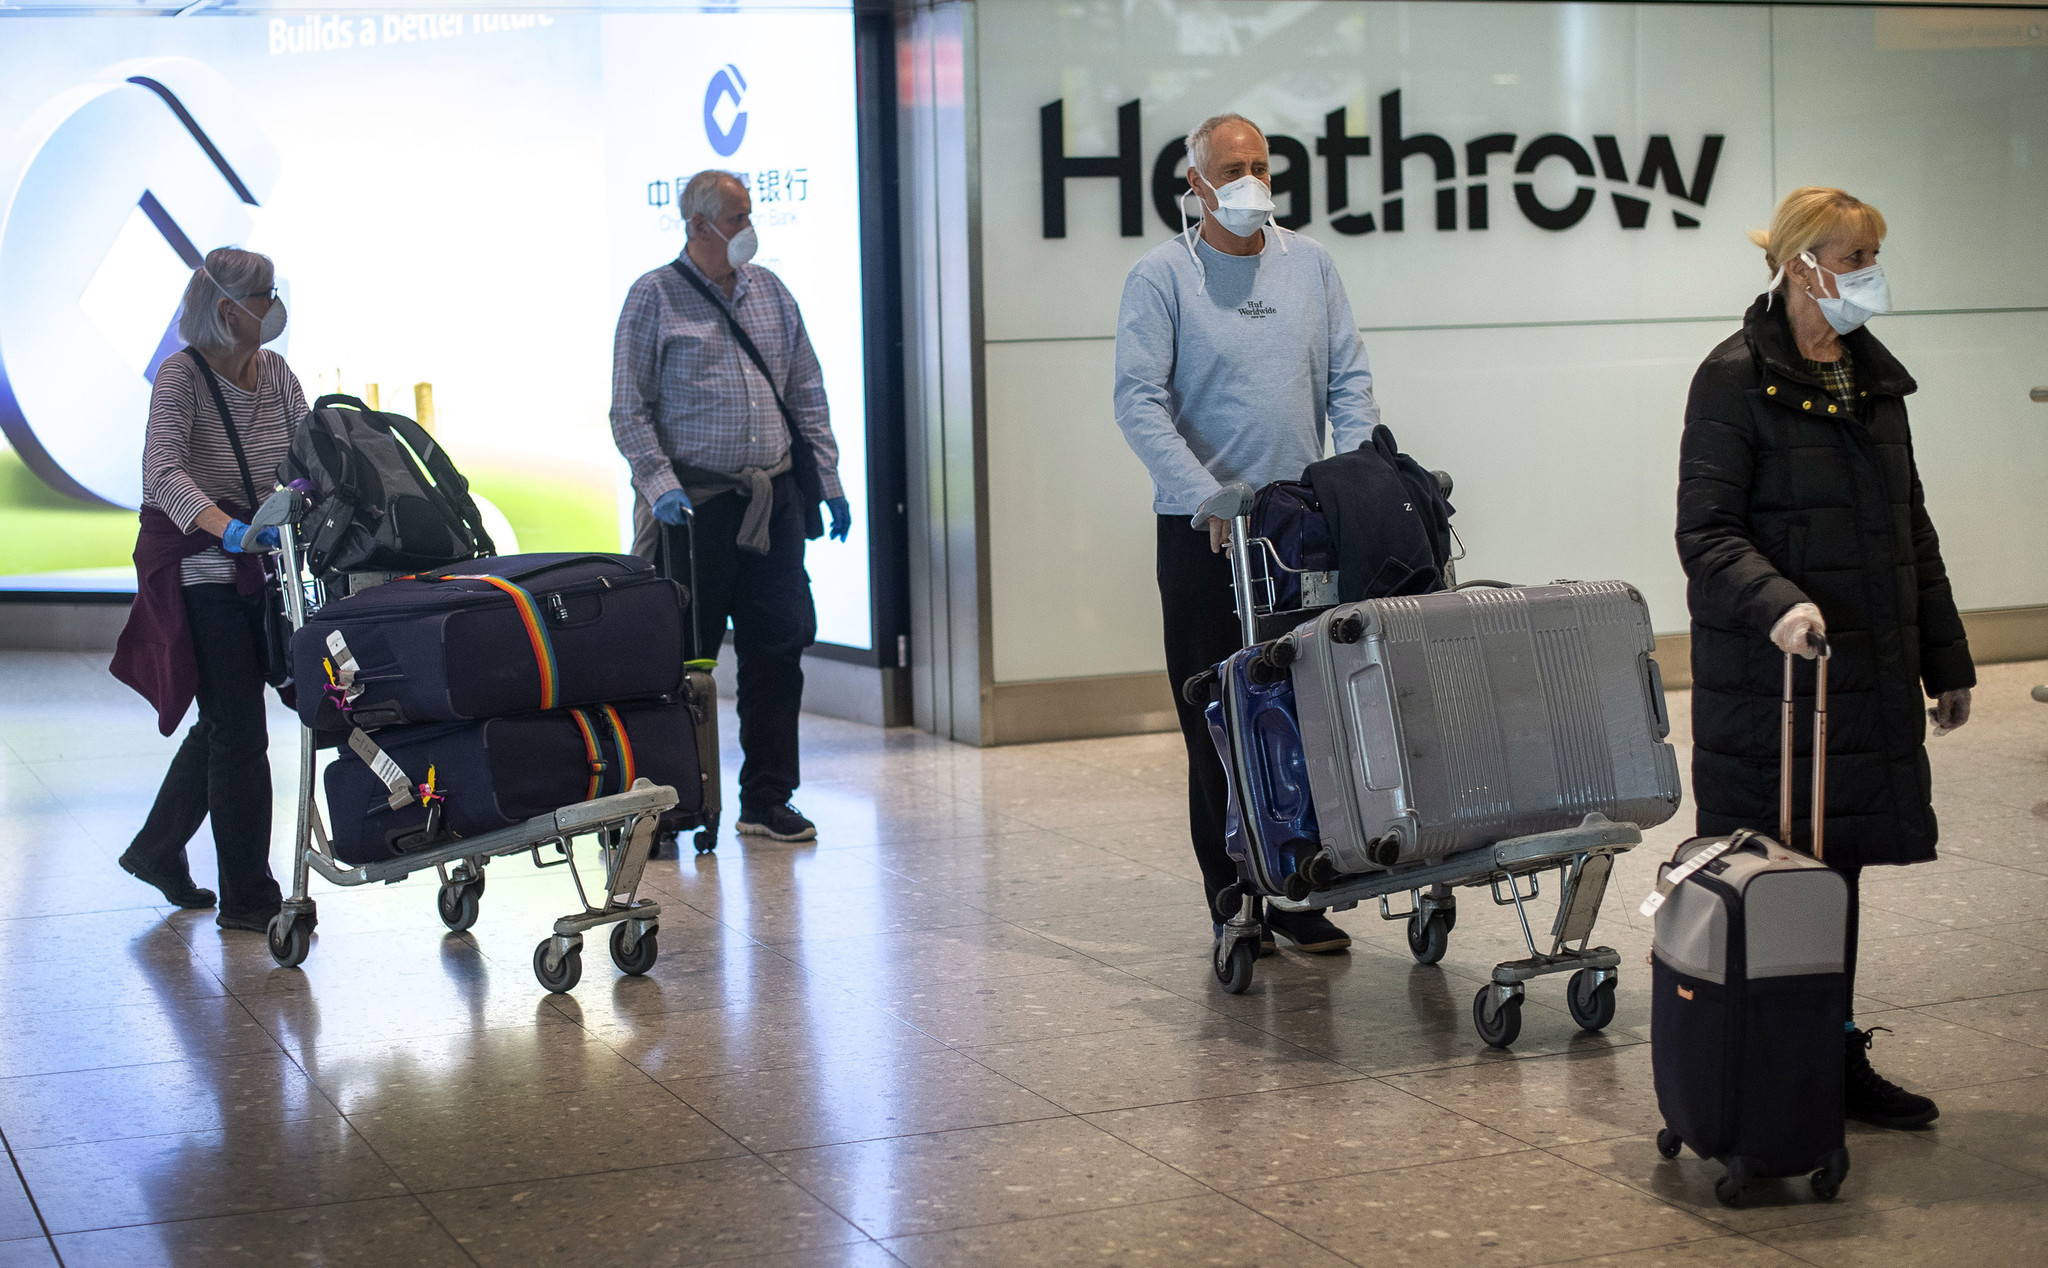 Britain to impose 2-week quarantine for anyone entering country: report